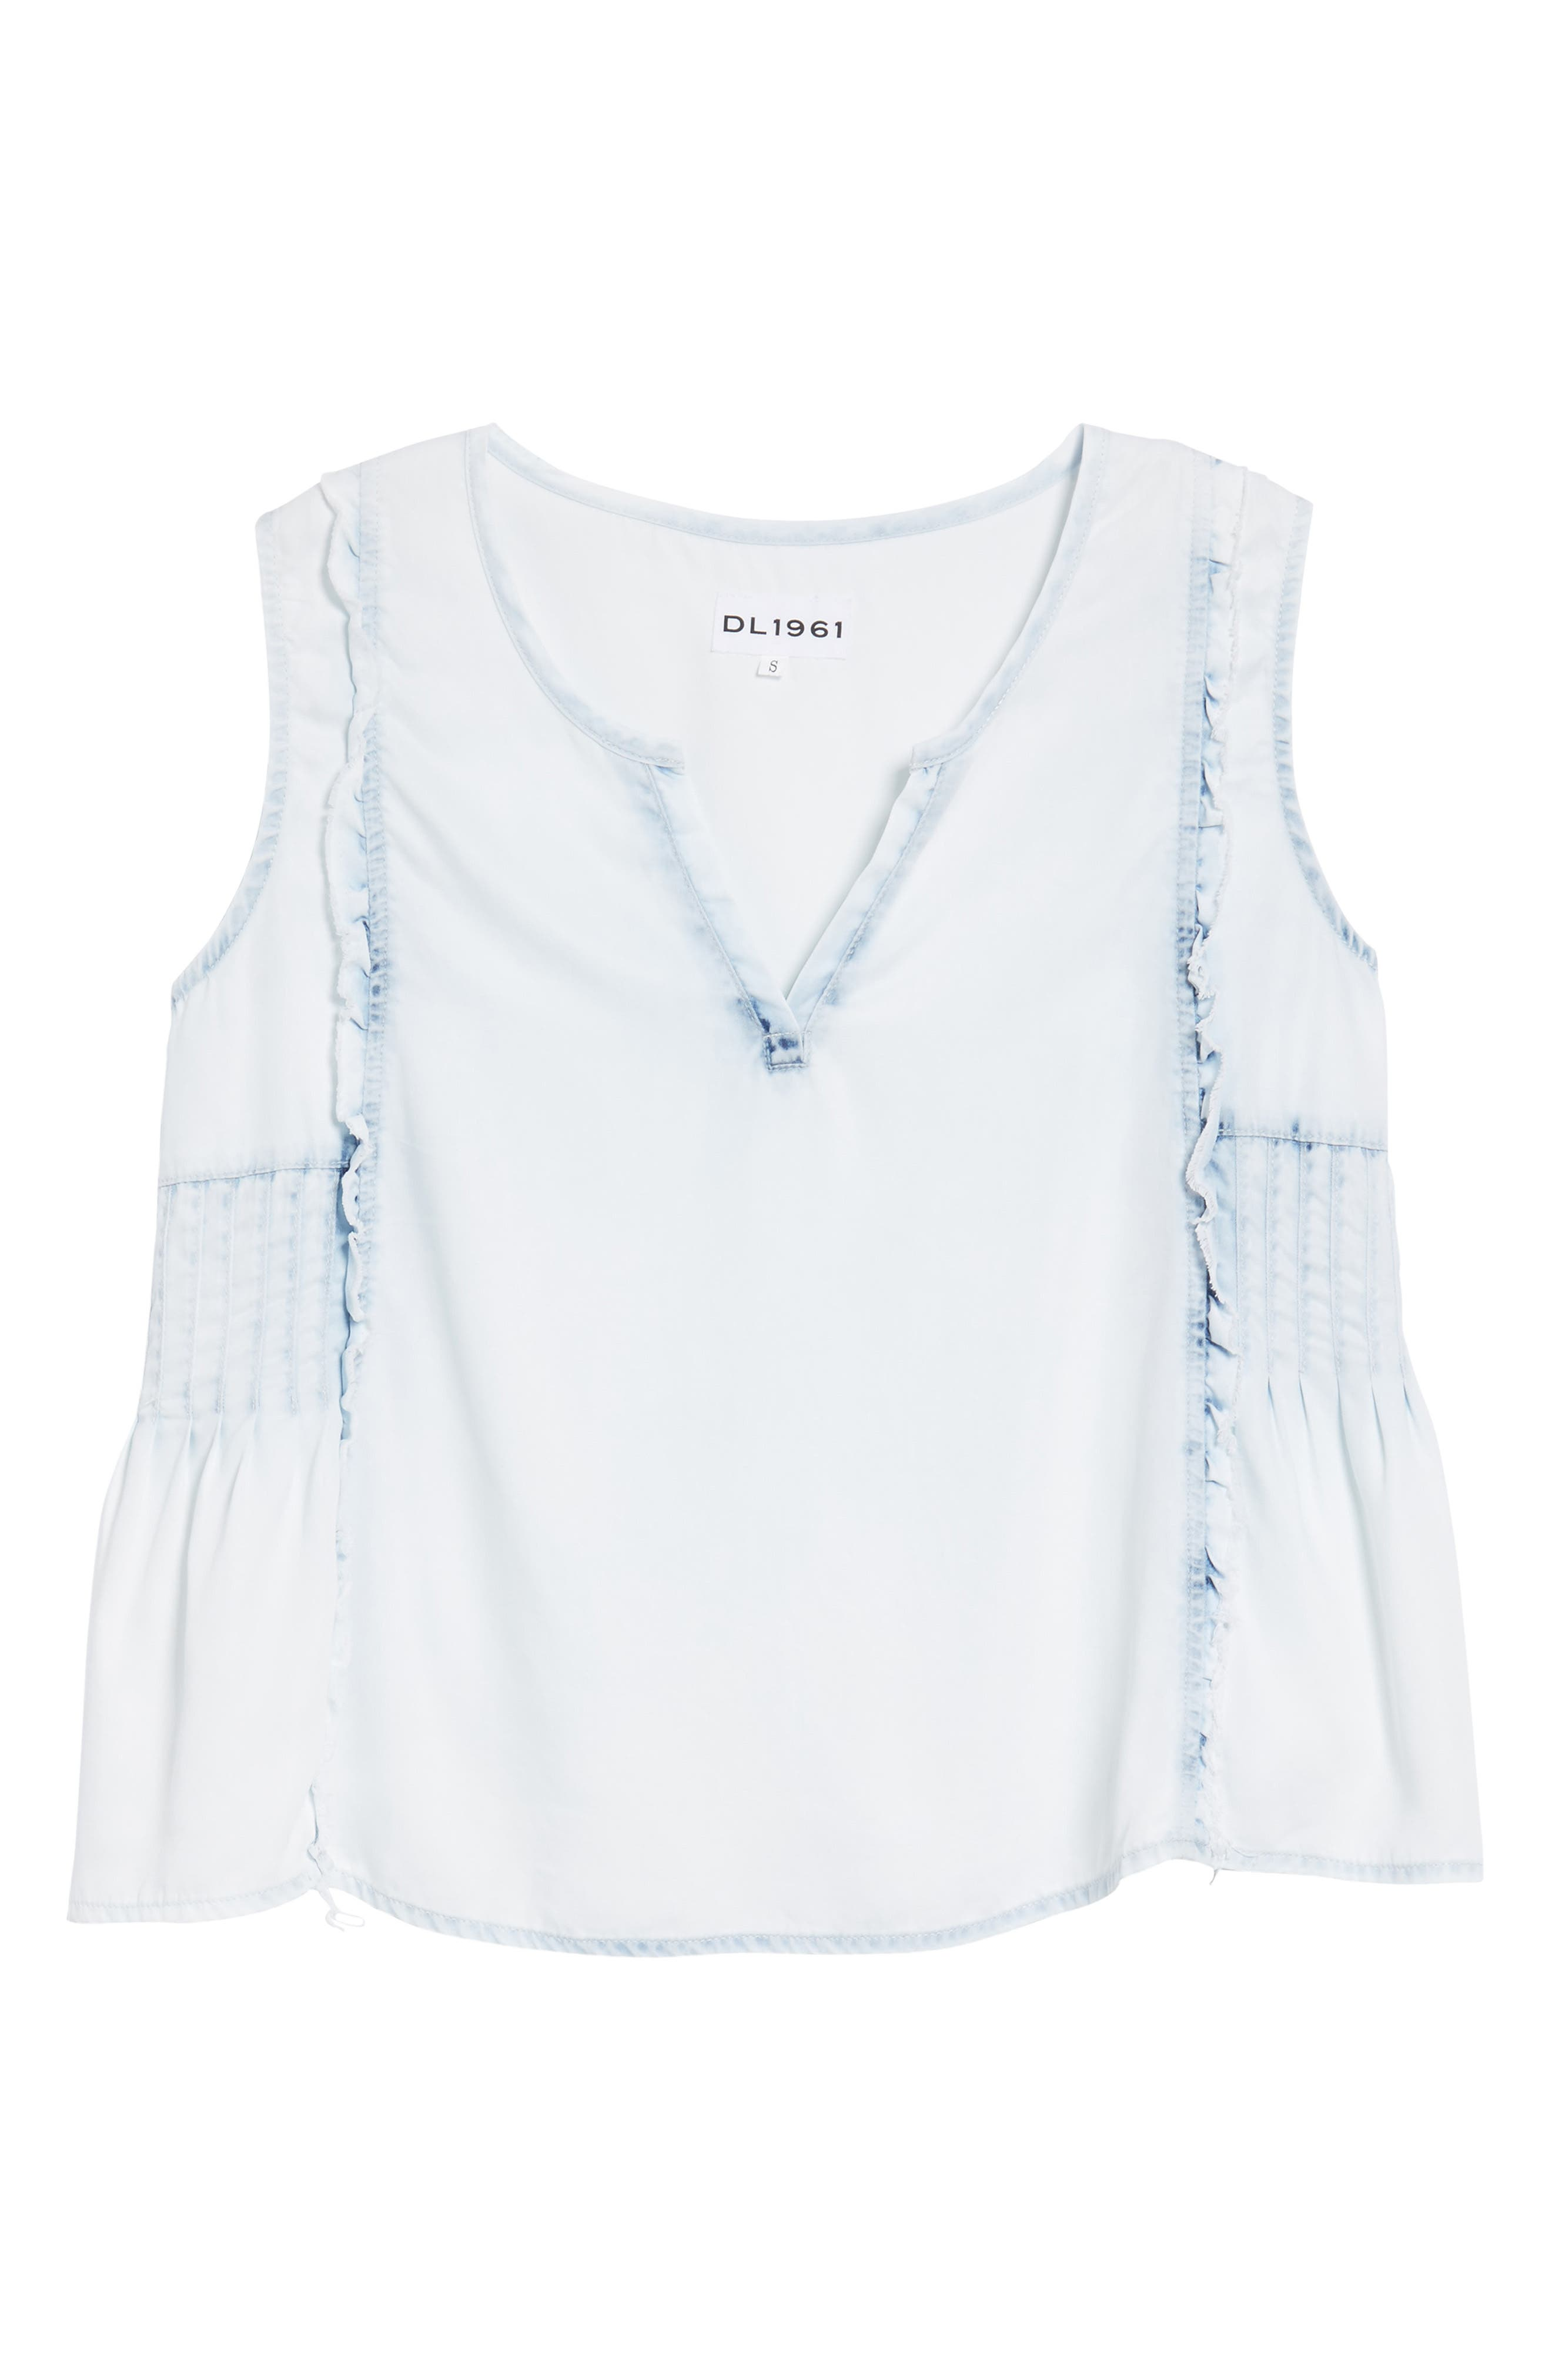 Mulberry St Chambray Top,                             Alternate thumbnail 6, color,                             Irregular Bleach